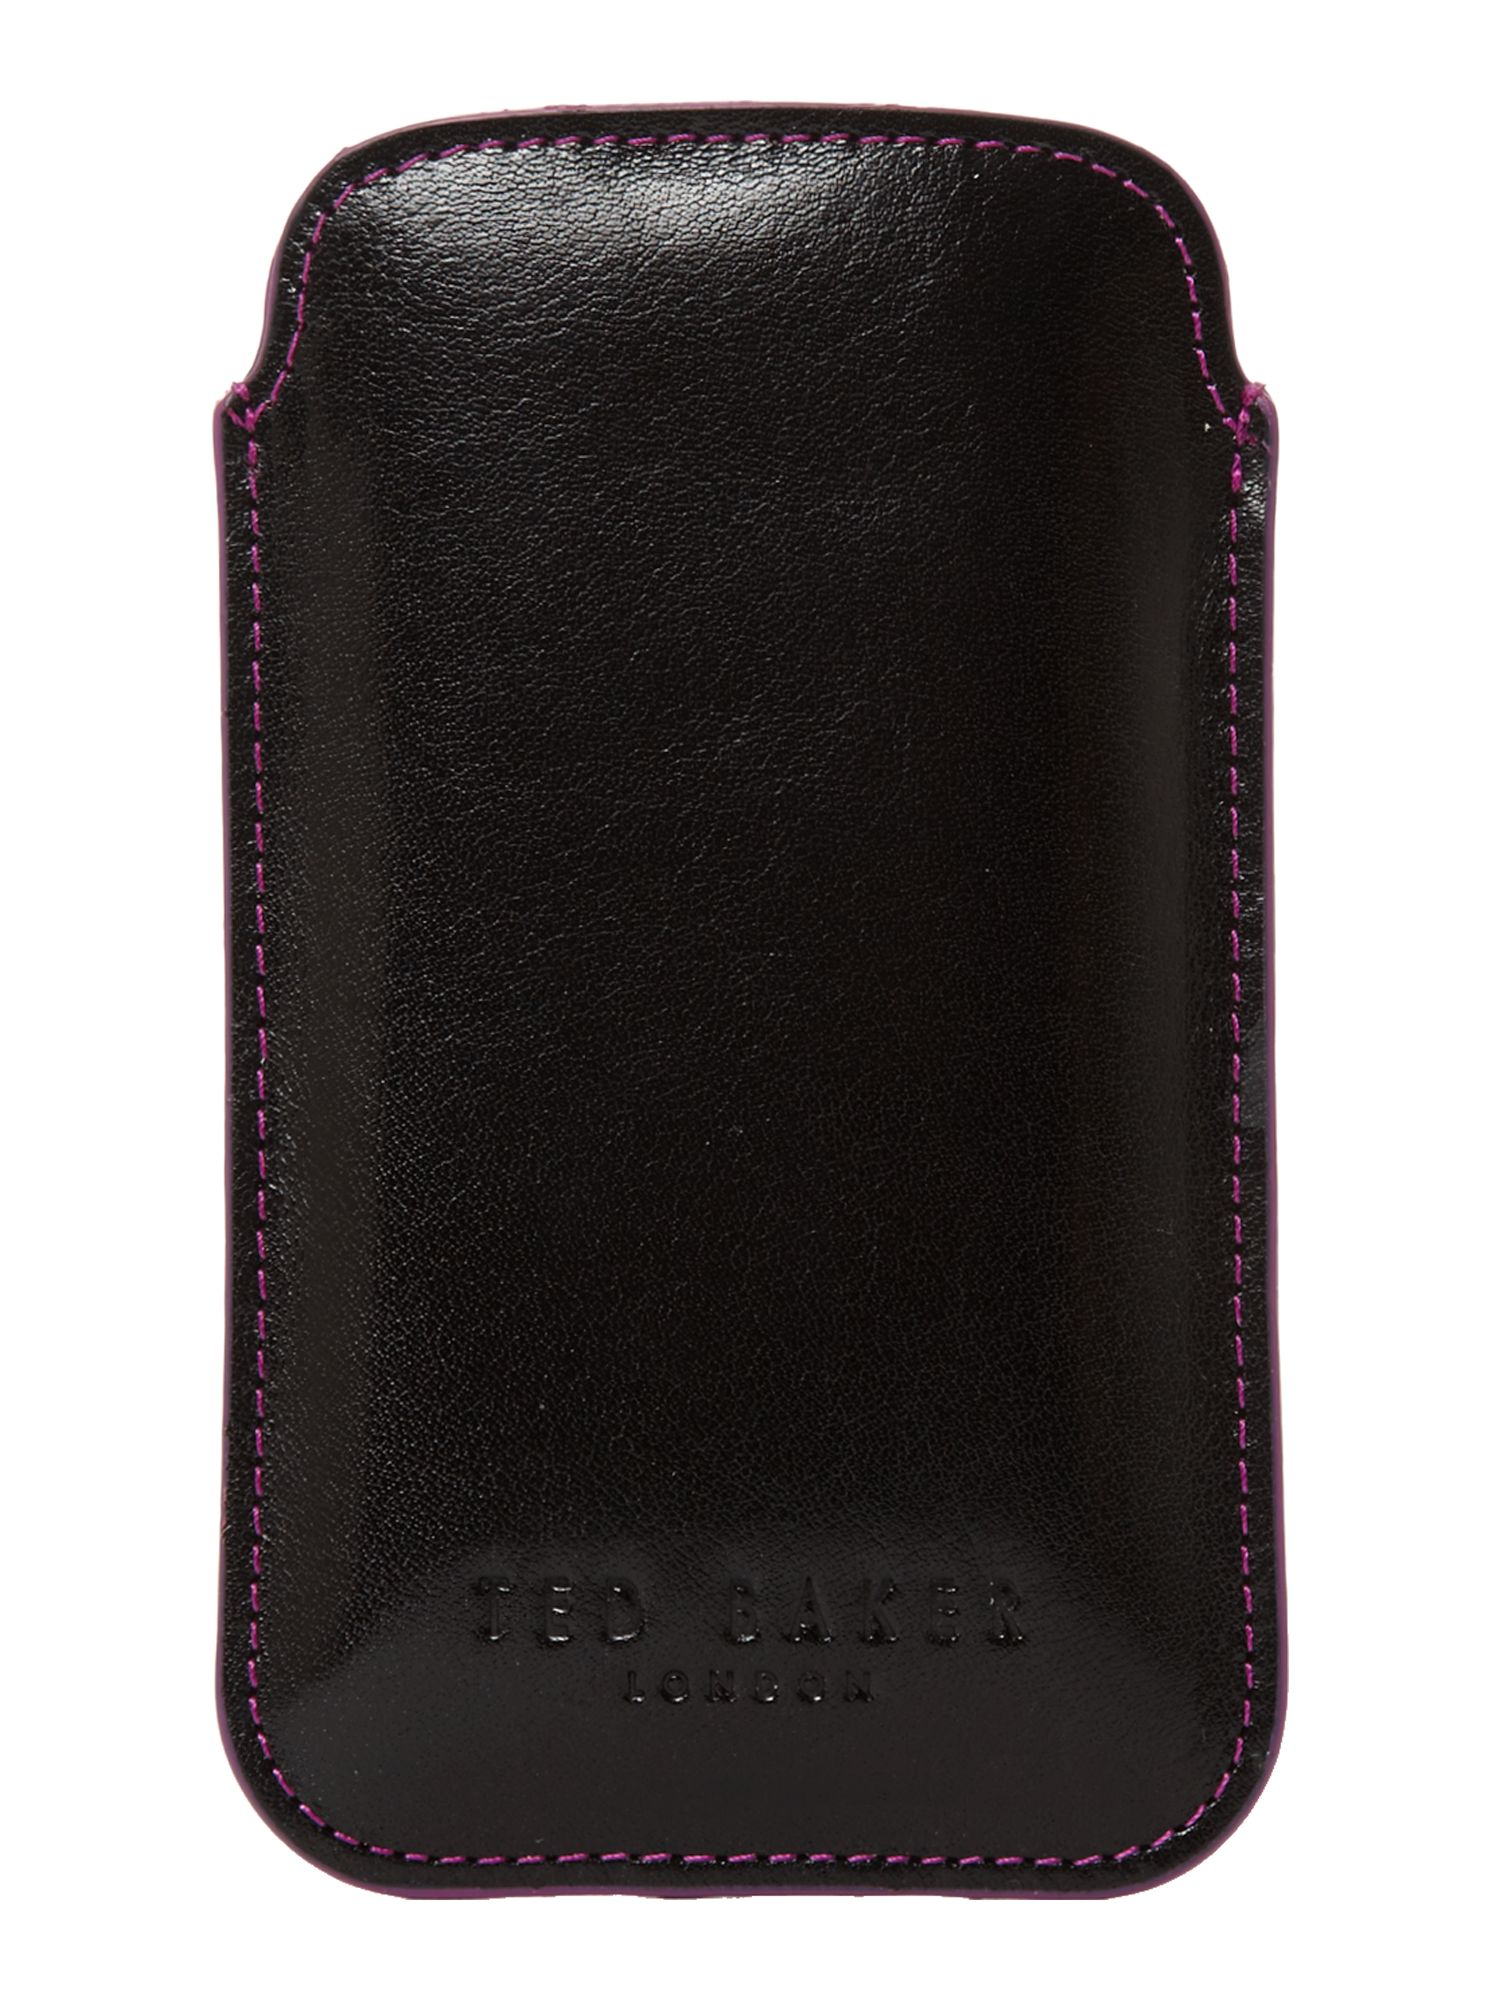 Edge painted leather phone case